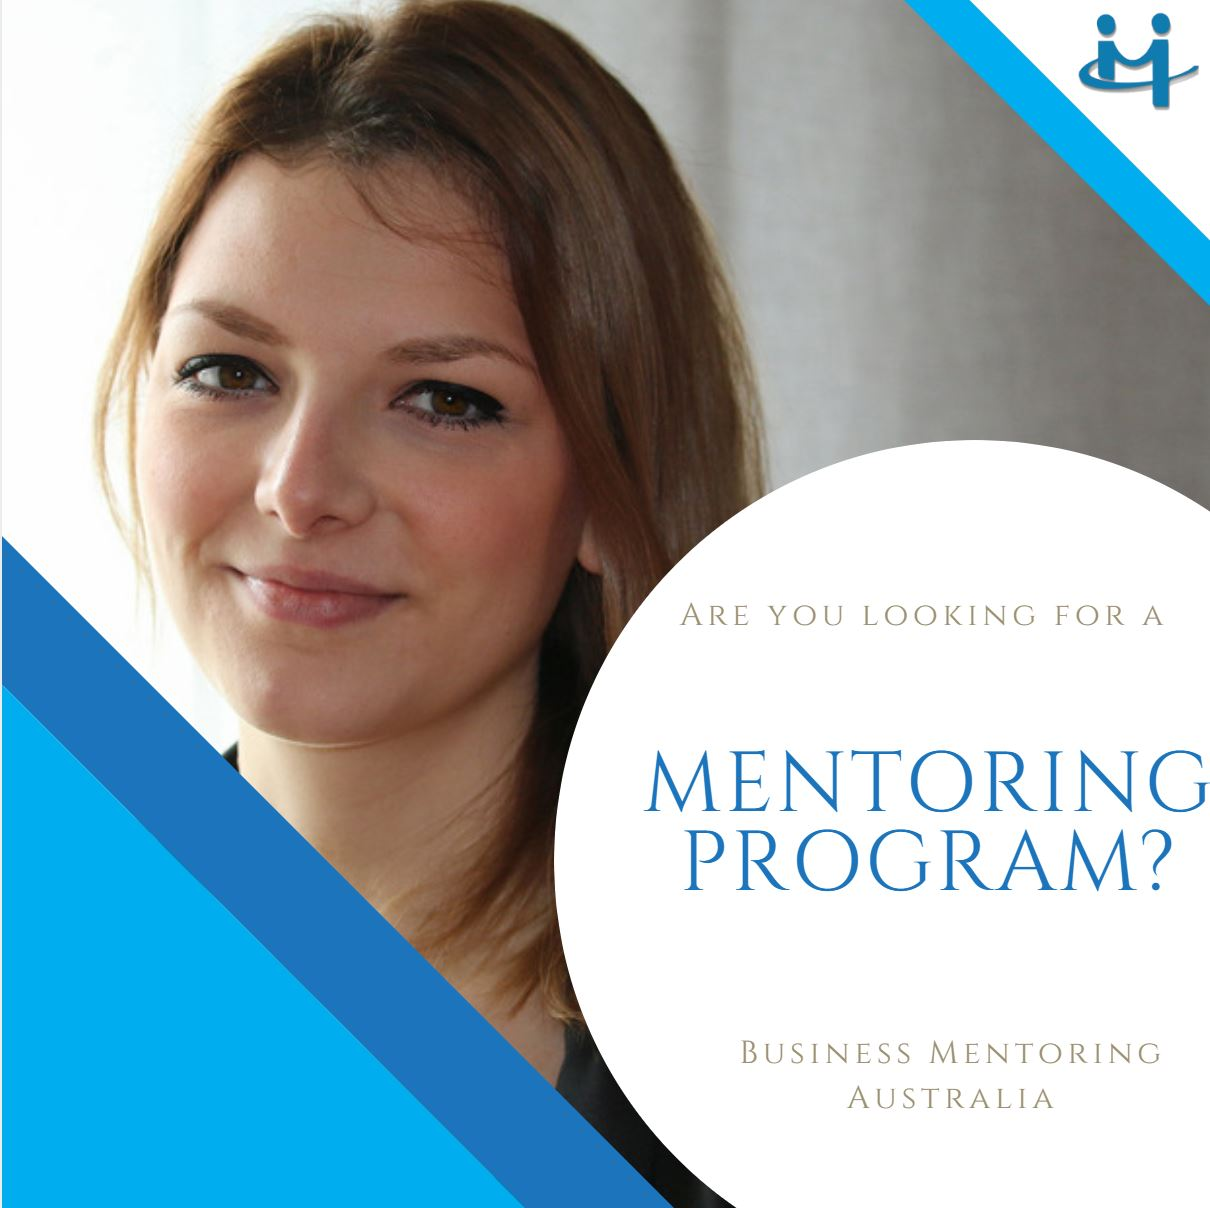 Business Mentoring Programs